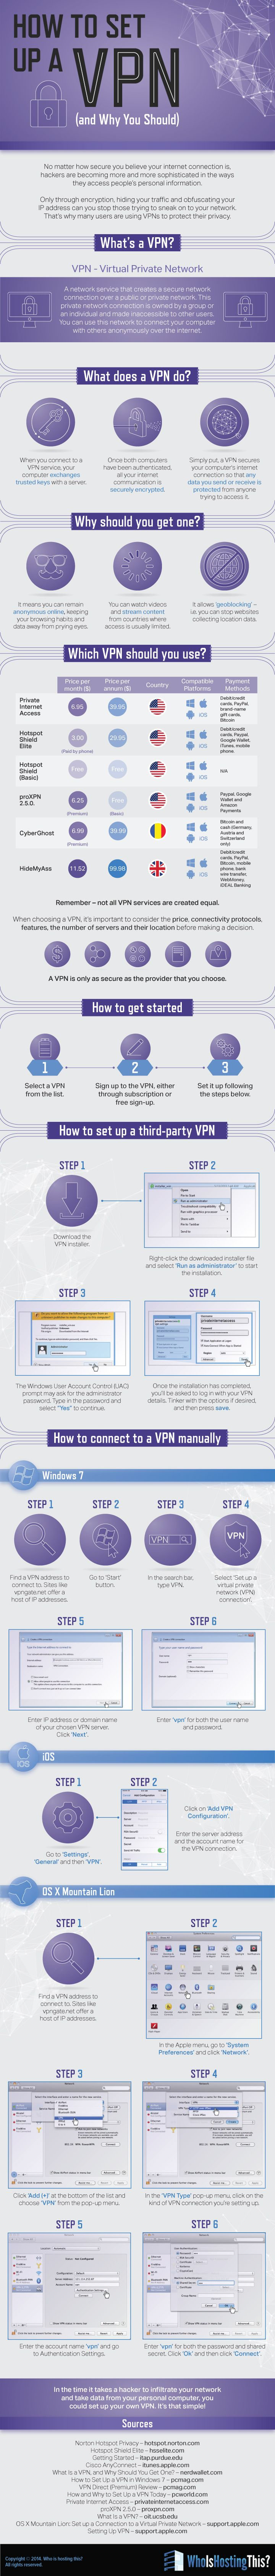 How to Set Up a VPN (and Why You Should) - #infographic